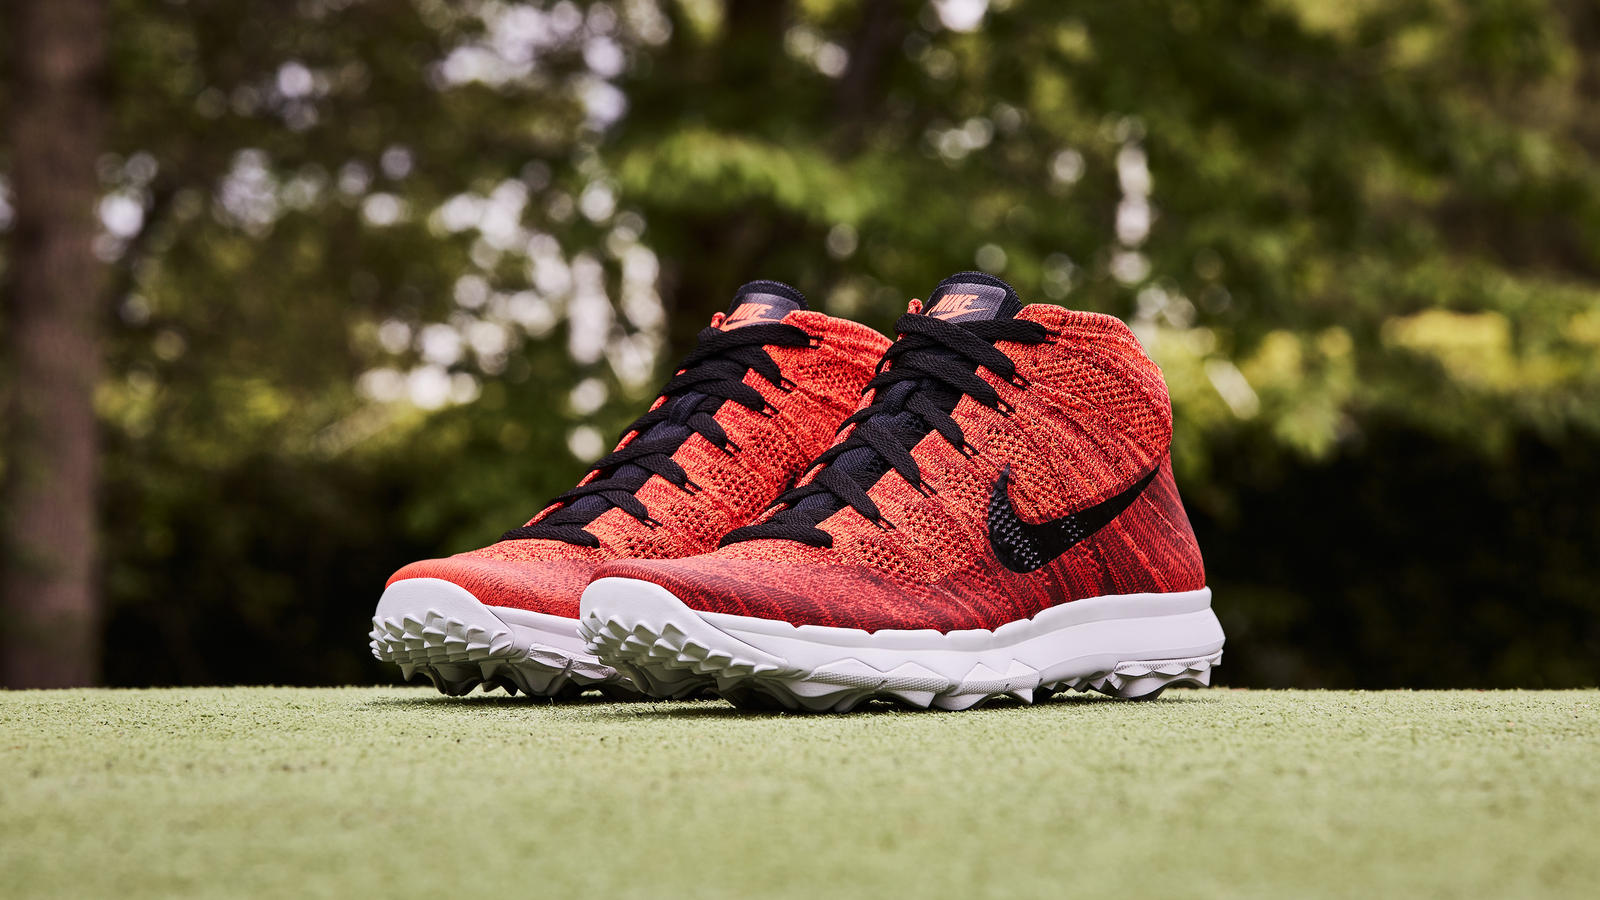 Nike news sneaker feed red flyknit golf 0392 v1 hd 1600